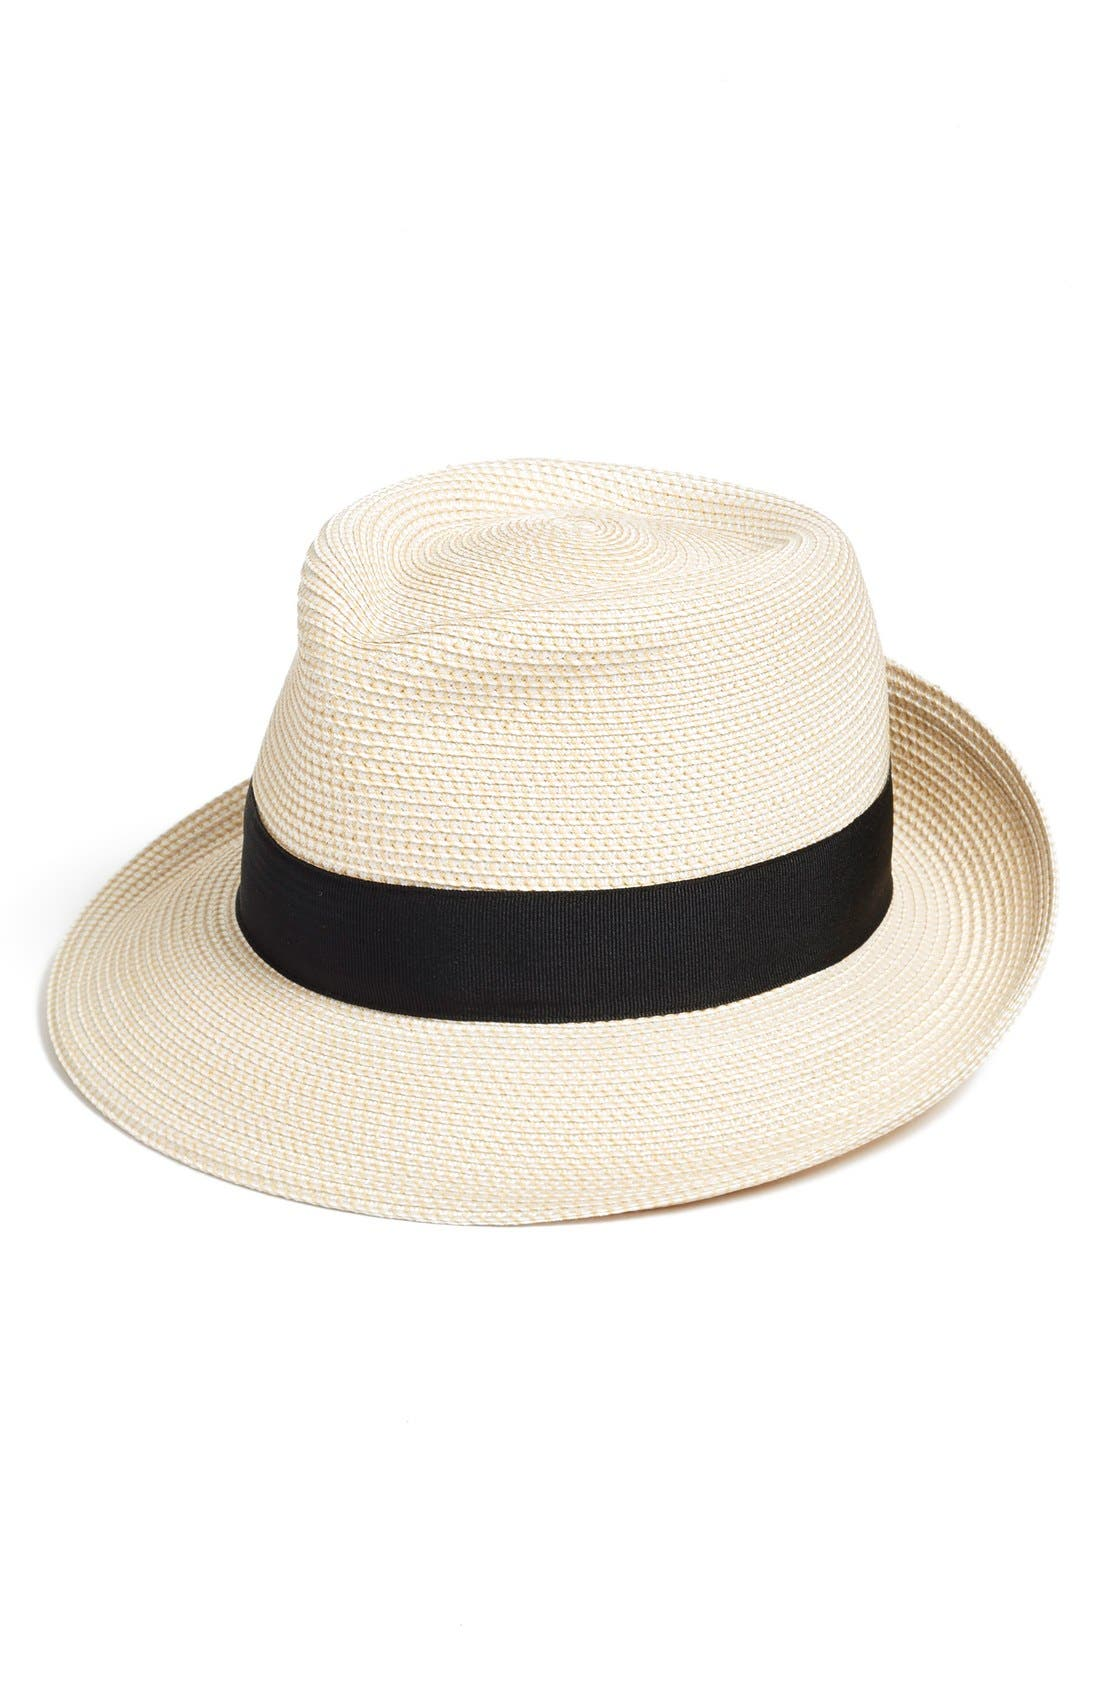 Alternate Image 1 Selected - Eric Javits 'Classic' Squishee® Packable Fedora Sun Hat